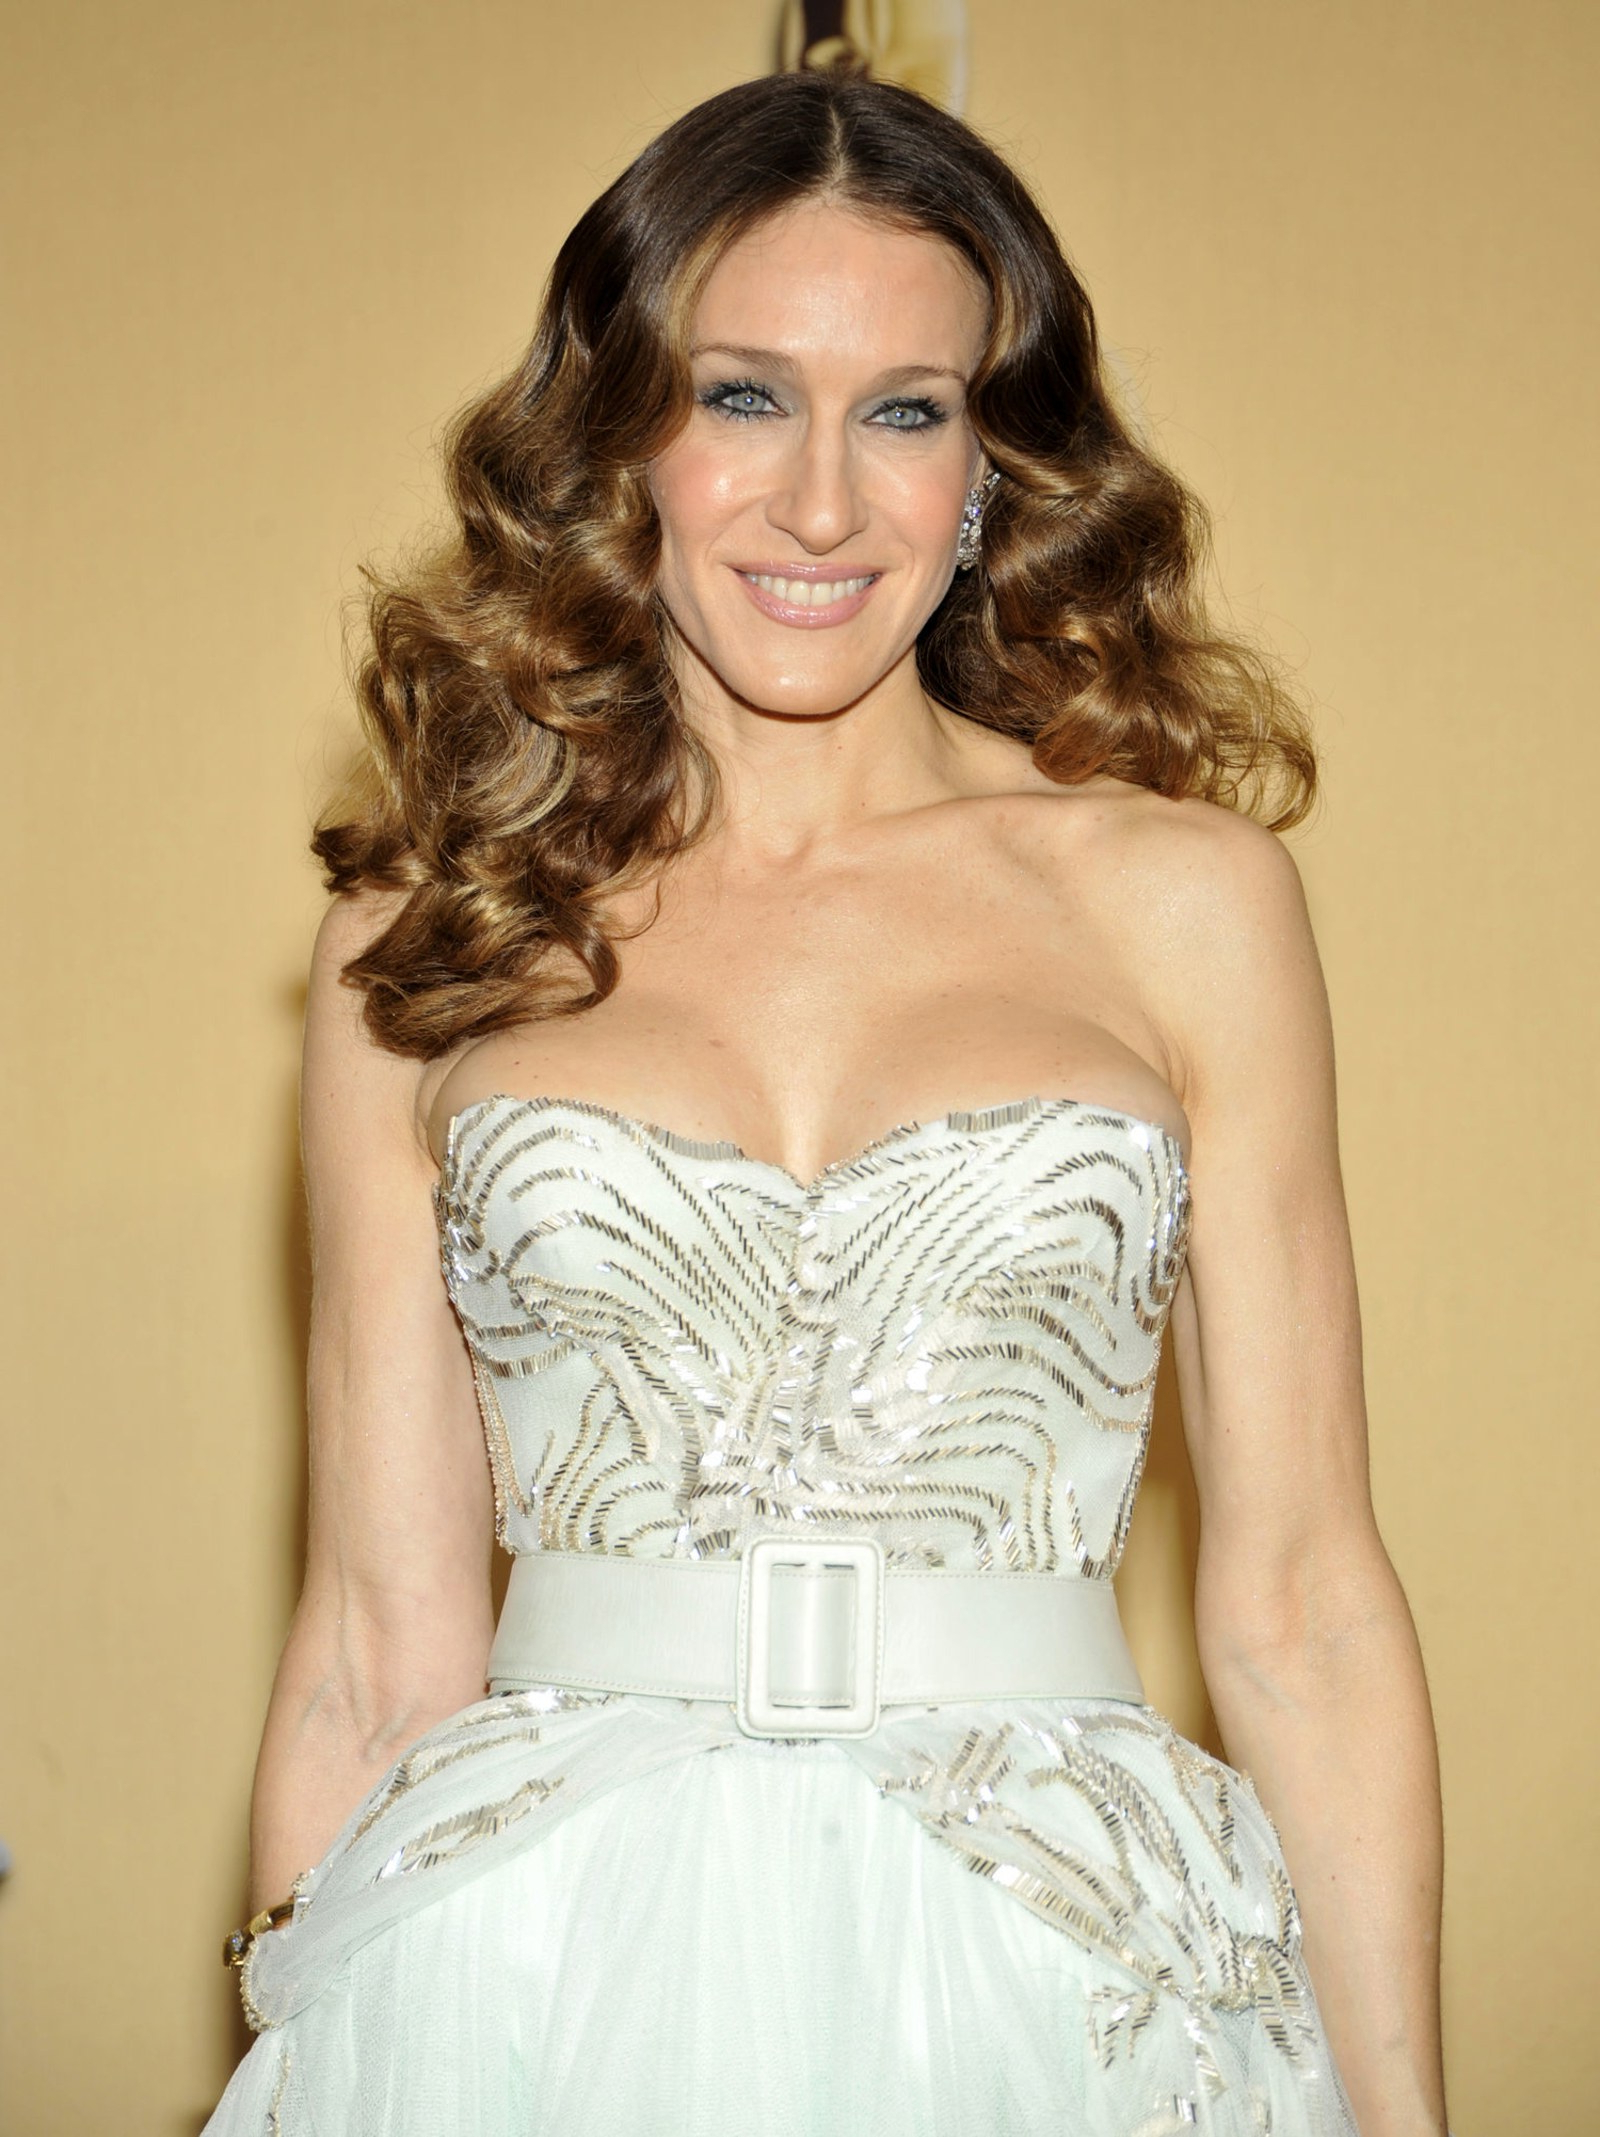 25 Of The Best Oscar Hairstyles Ever – Glamour With Sarah Jessica Parker Short Hairstyles (View 21 of 25)